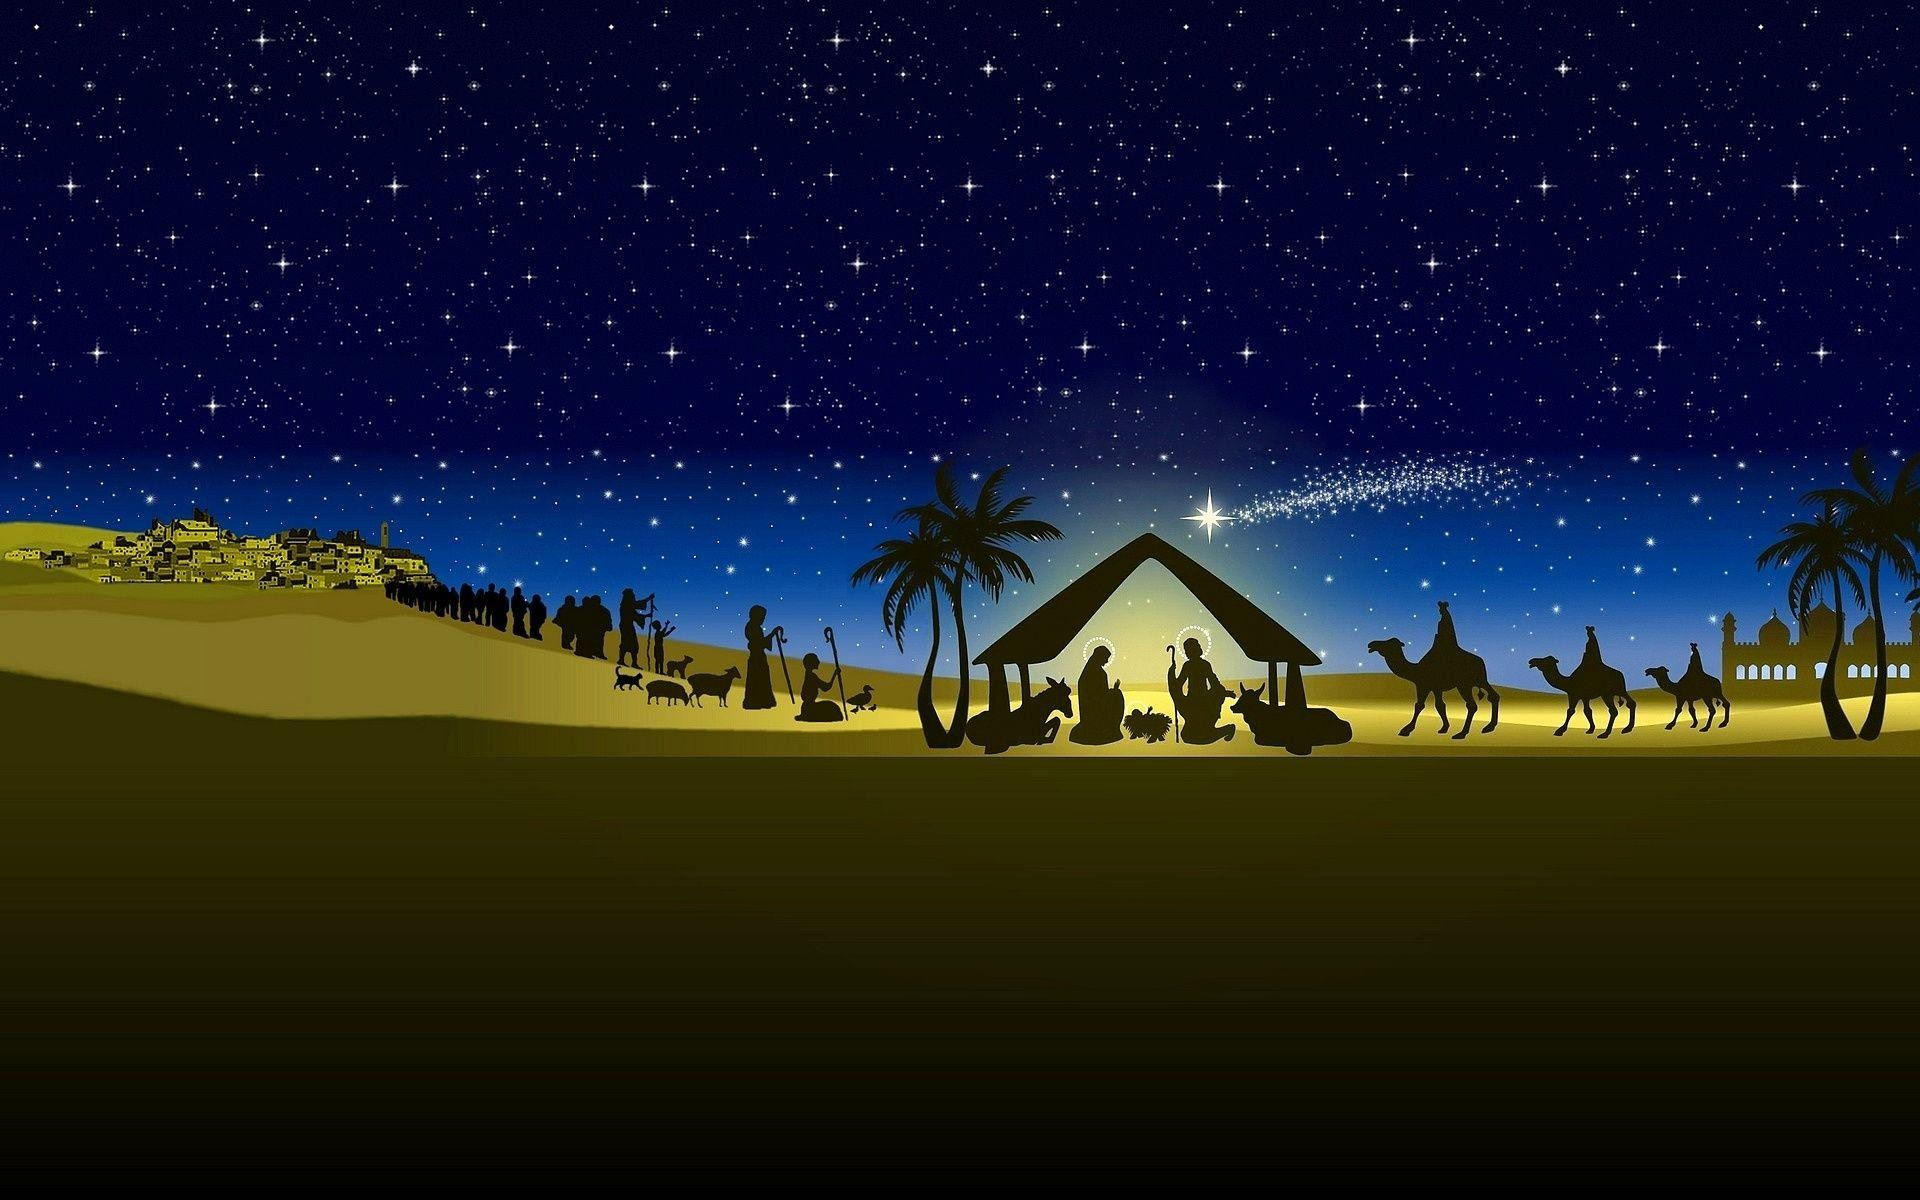 Wallpapers For > Christmas Nativity Wallpaper Hd